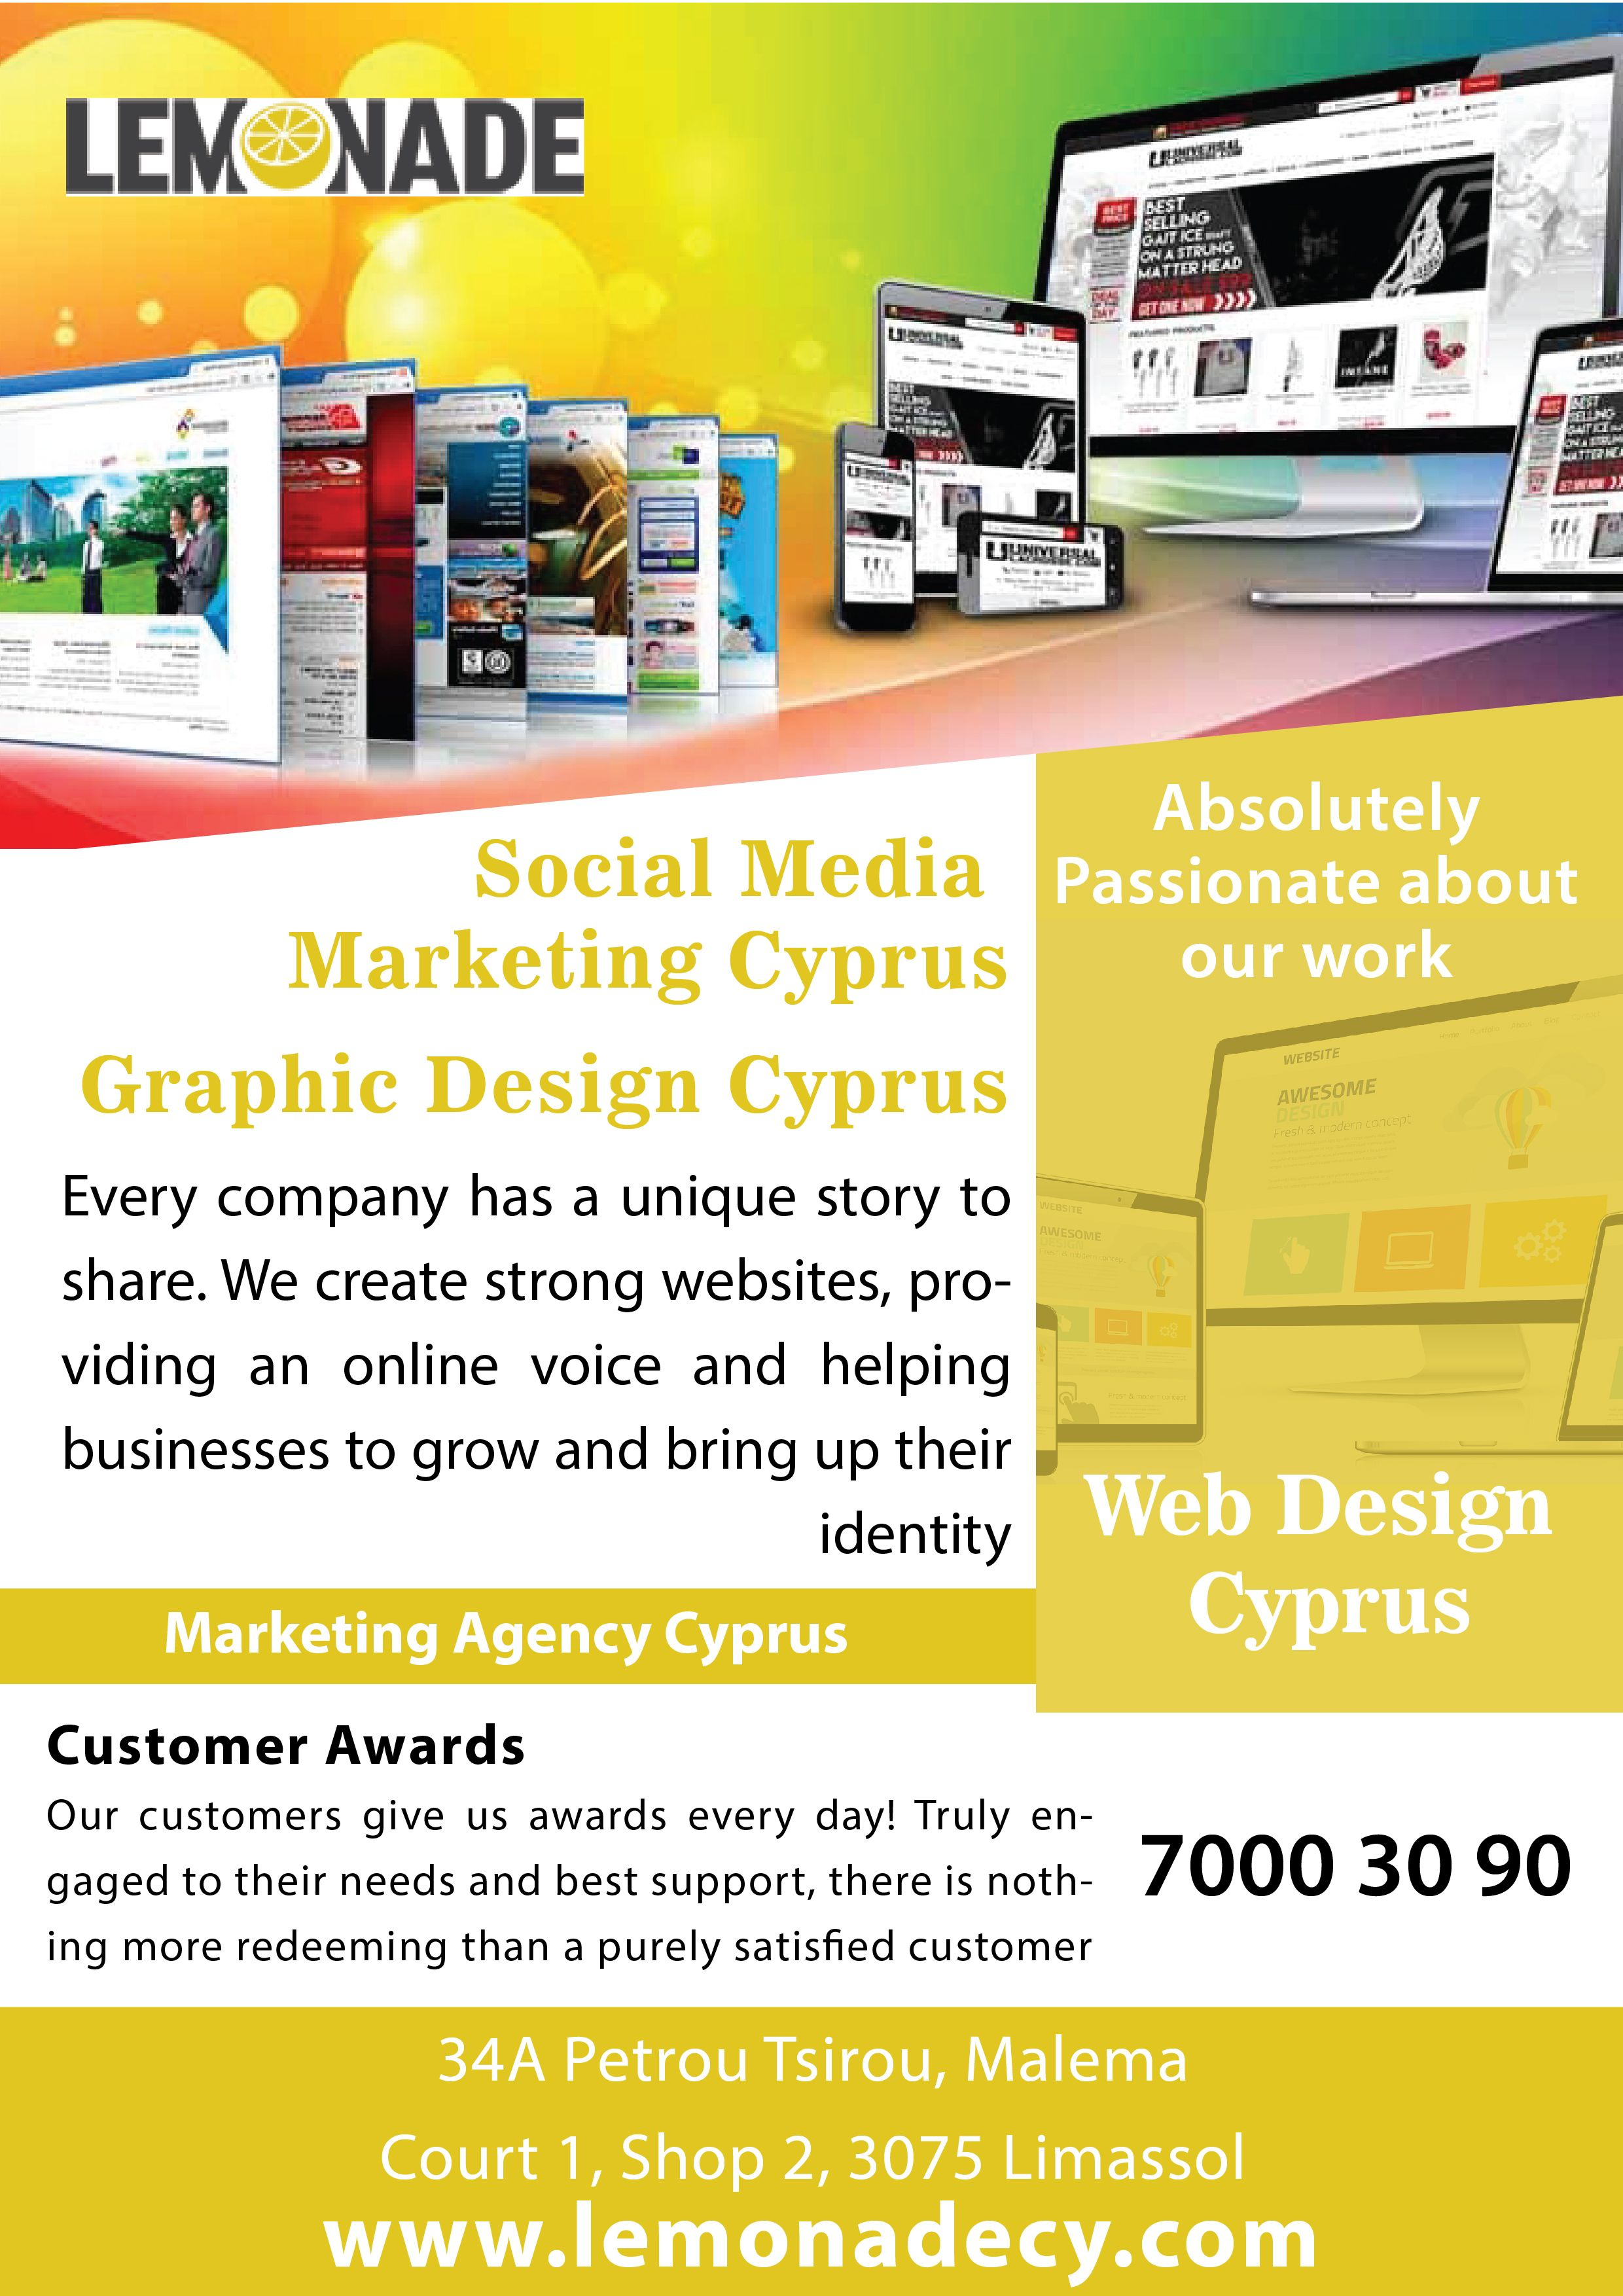 Web Design Cyprus In 2020 Web Design Web Design Services Online Visibility